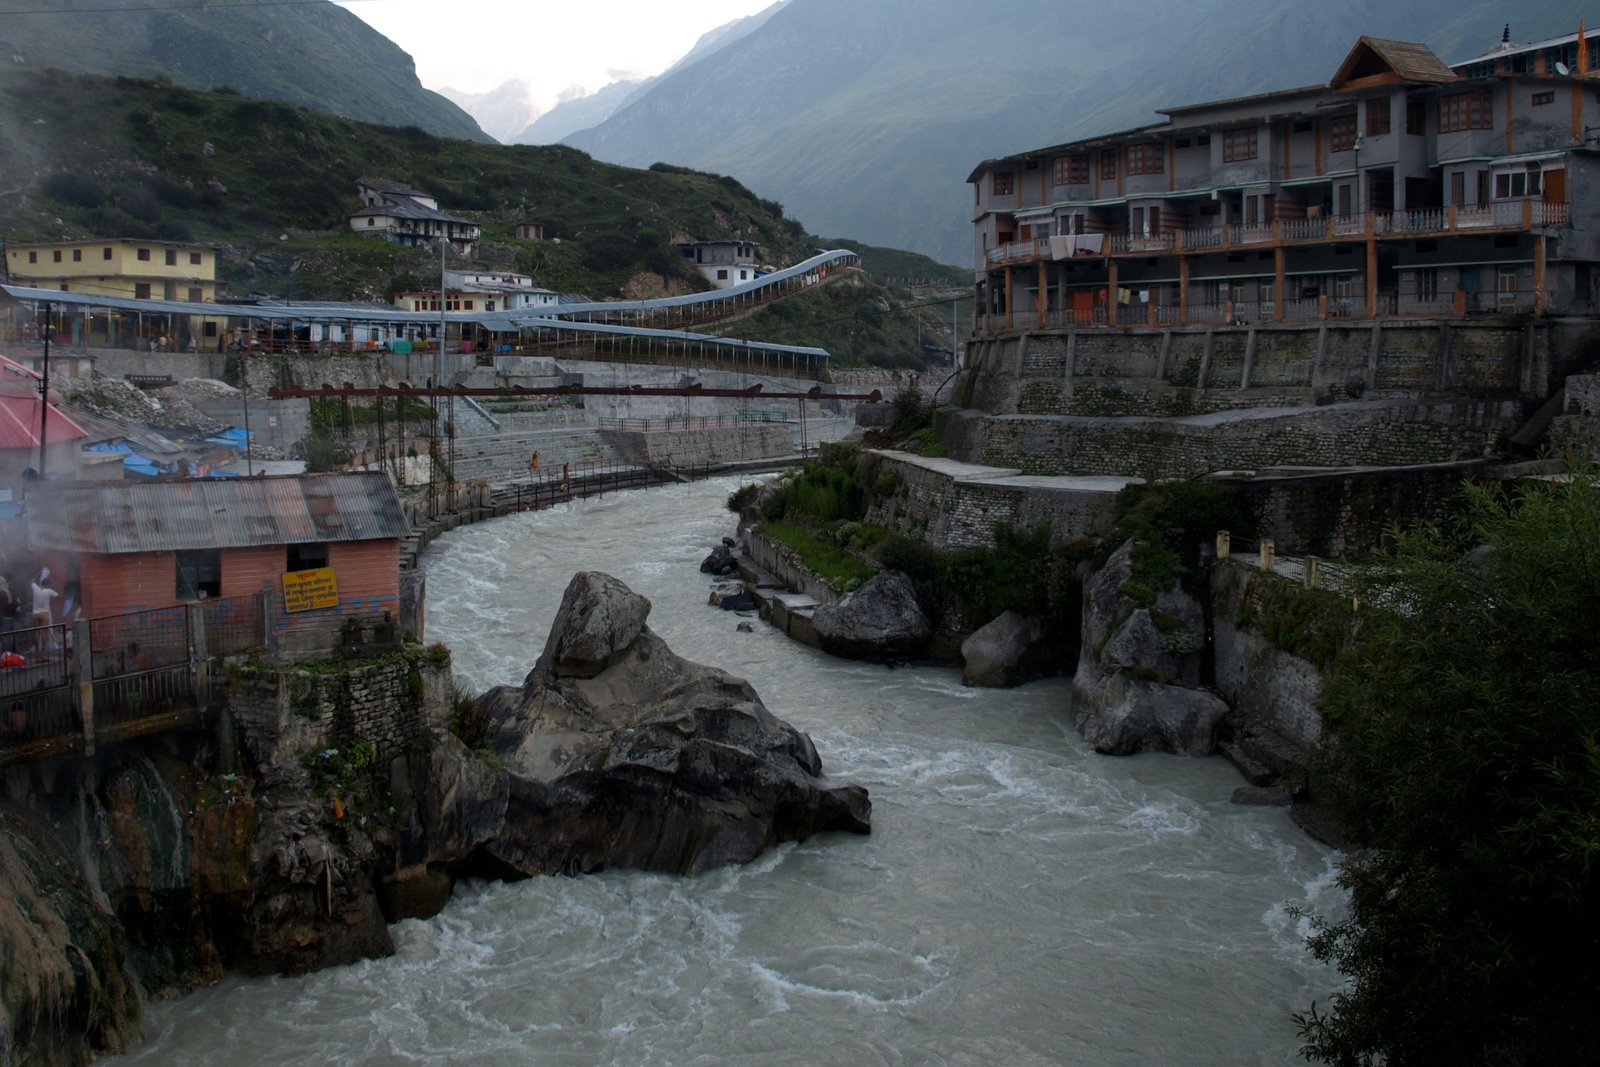 Photo: from the bridge connecting Badrinath temple and town.